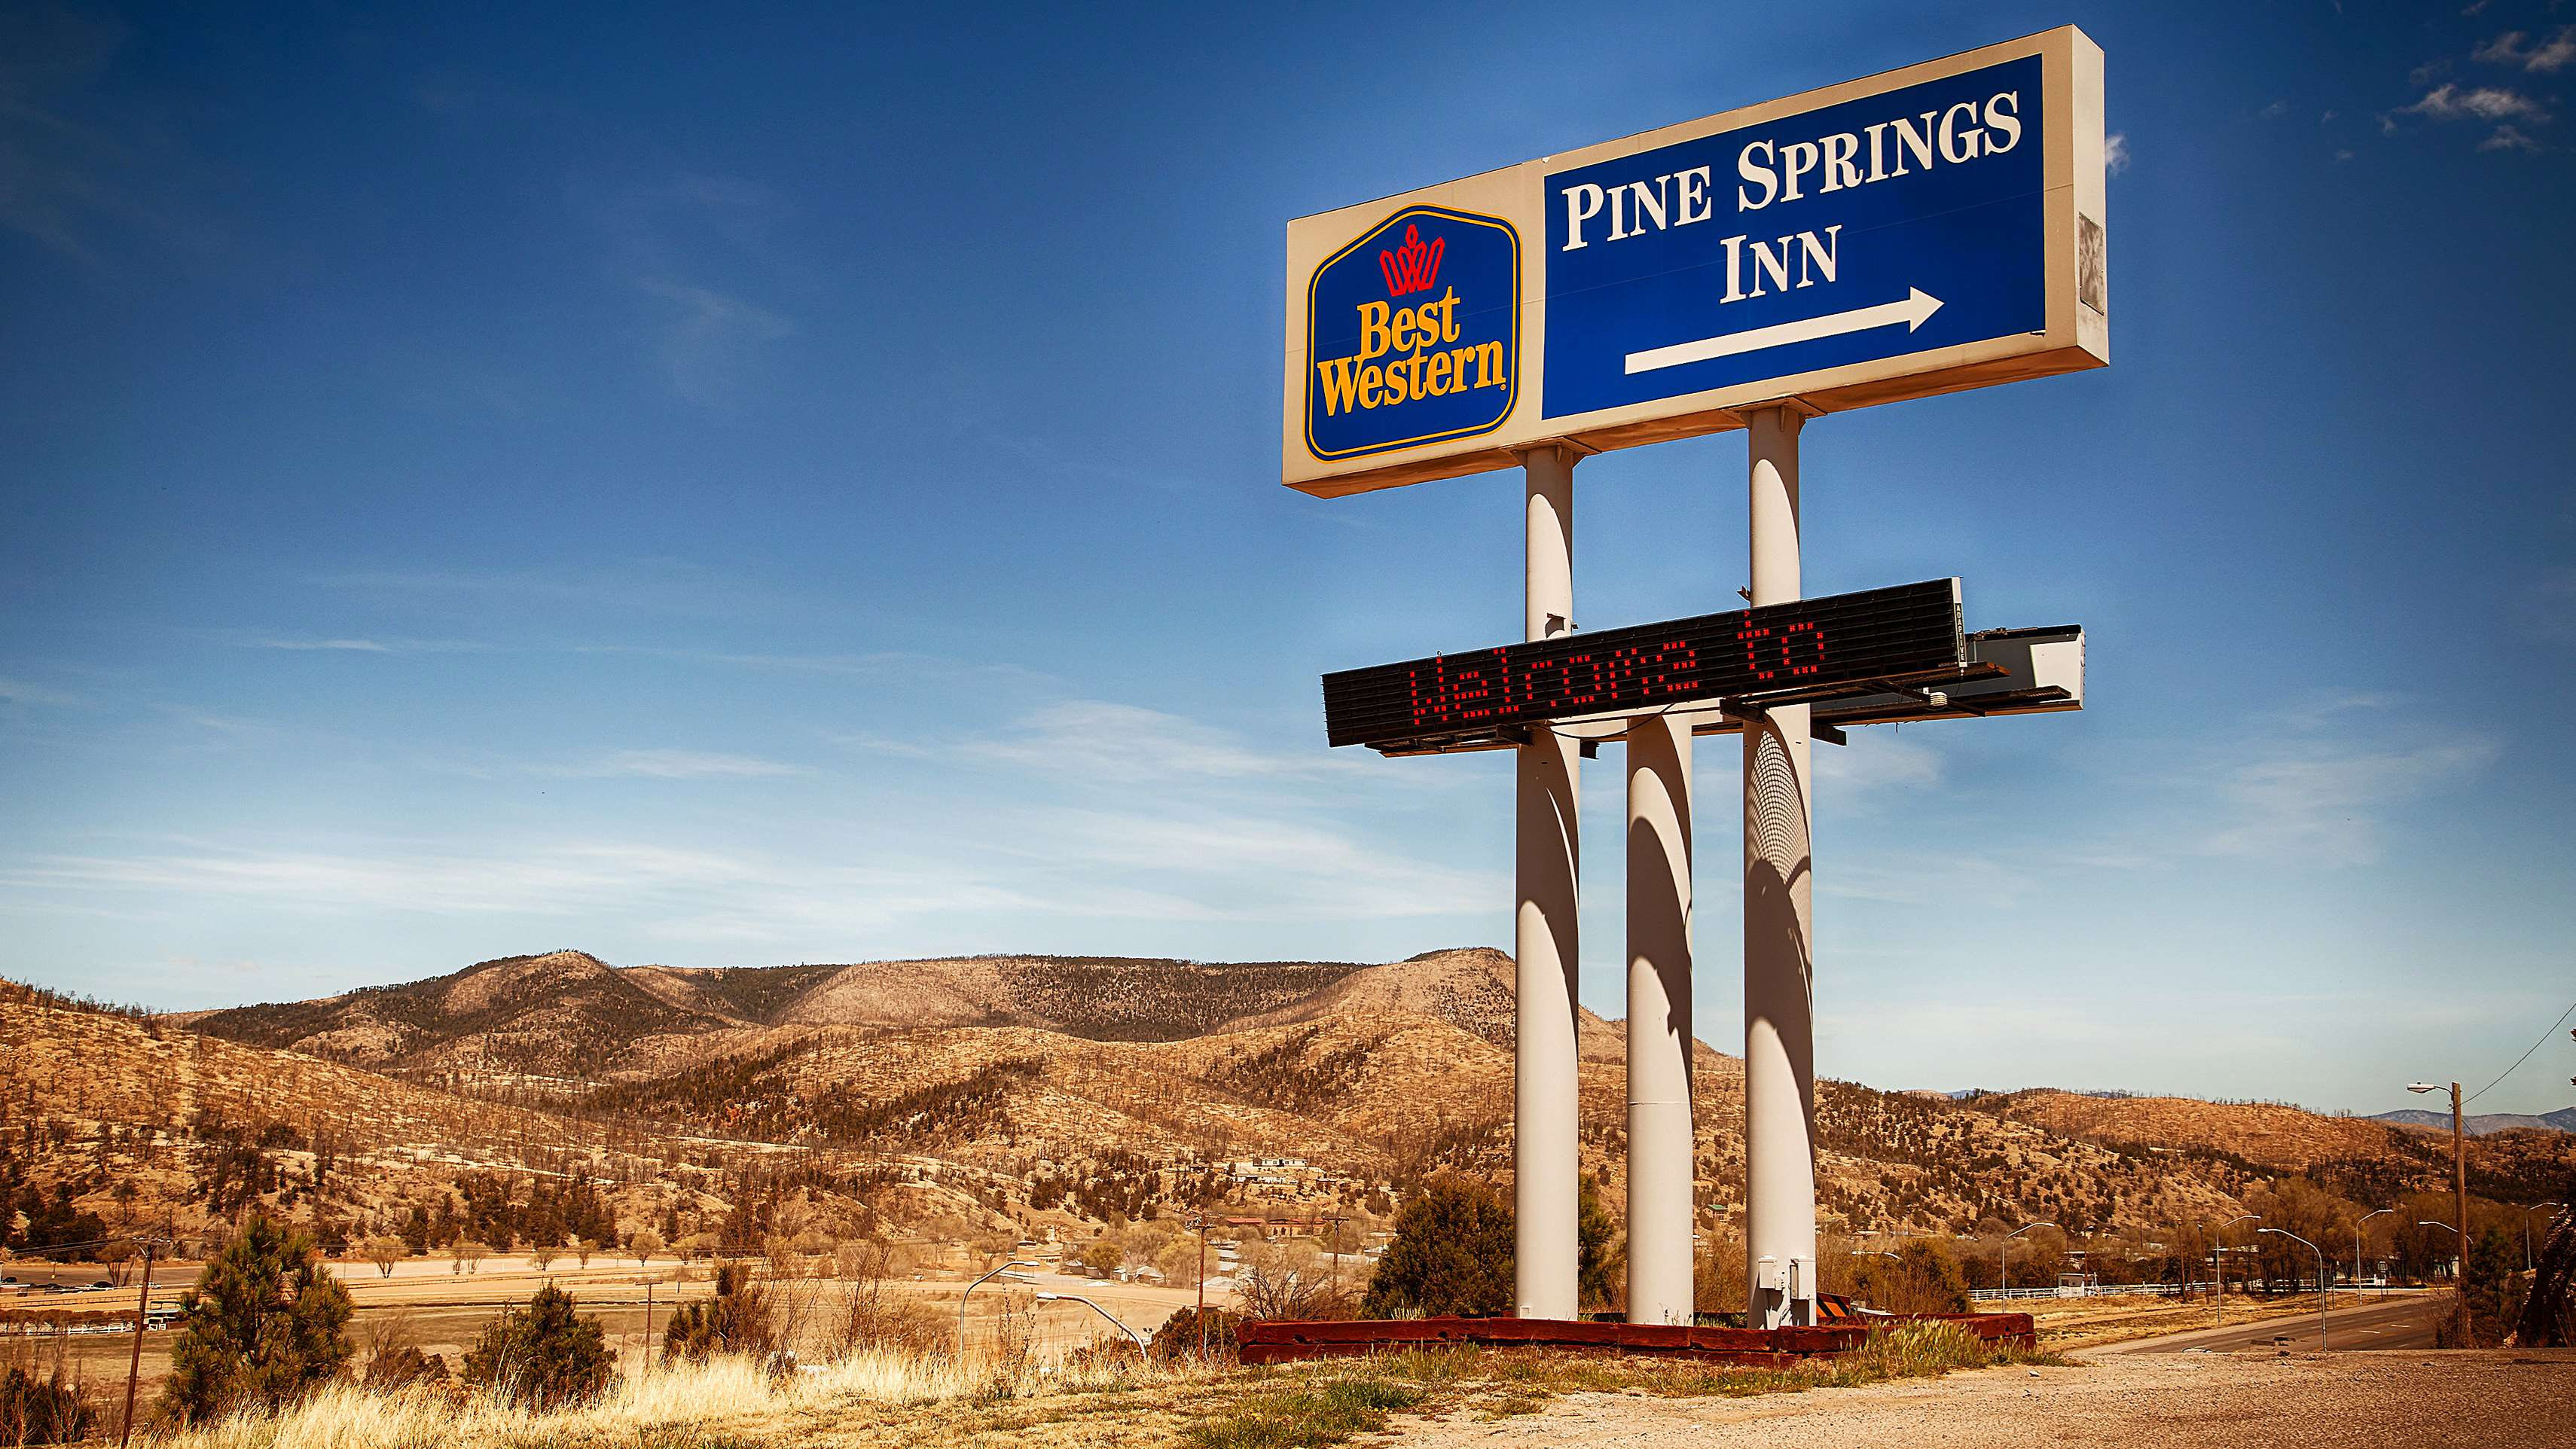 Best Western Pine Springs Inn Ruidoso Downs New Mexico